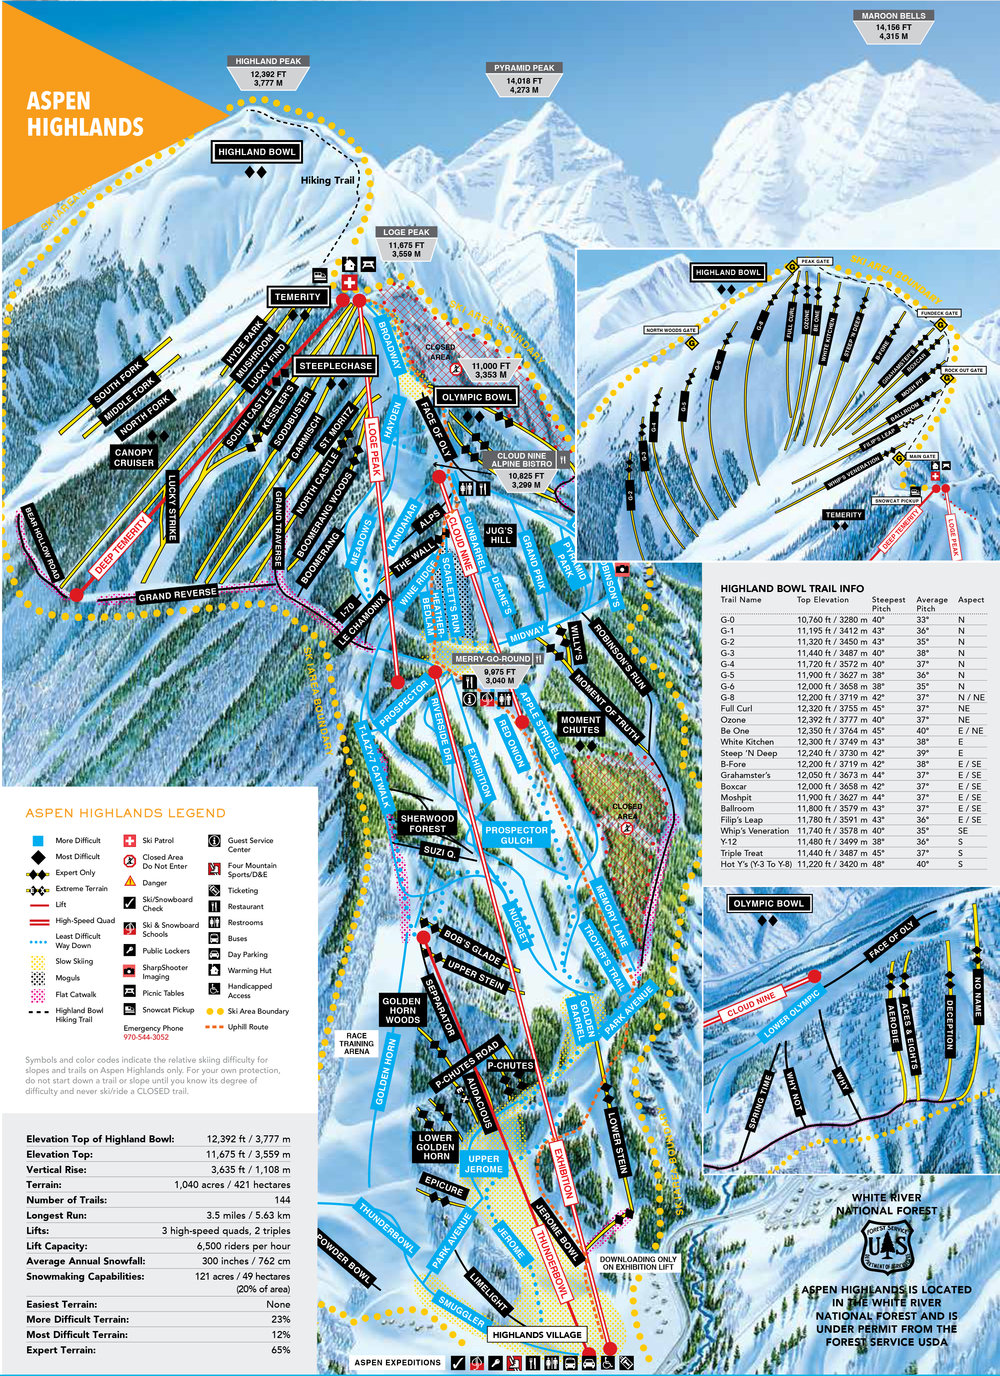 Aspen Highlands Trail Map - Click to enlarge